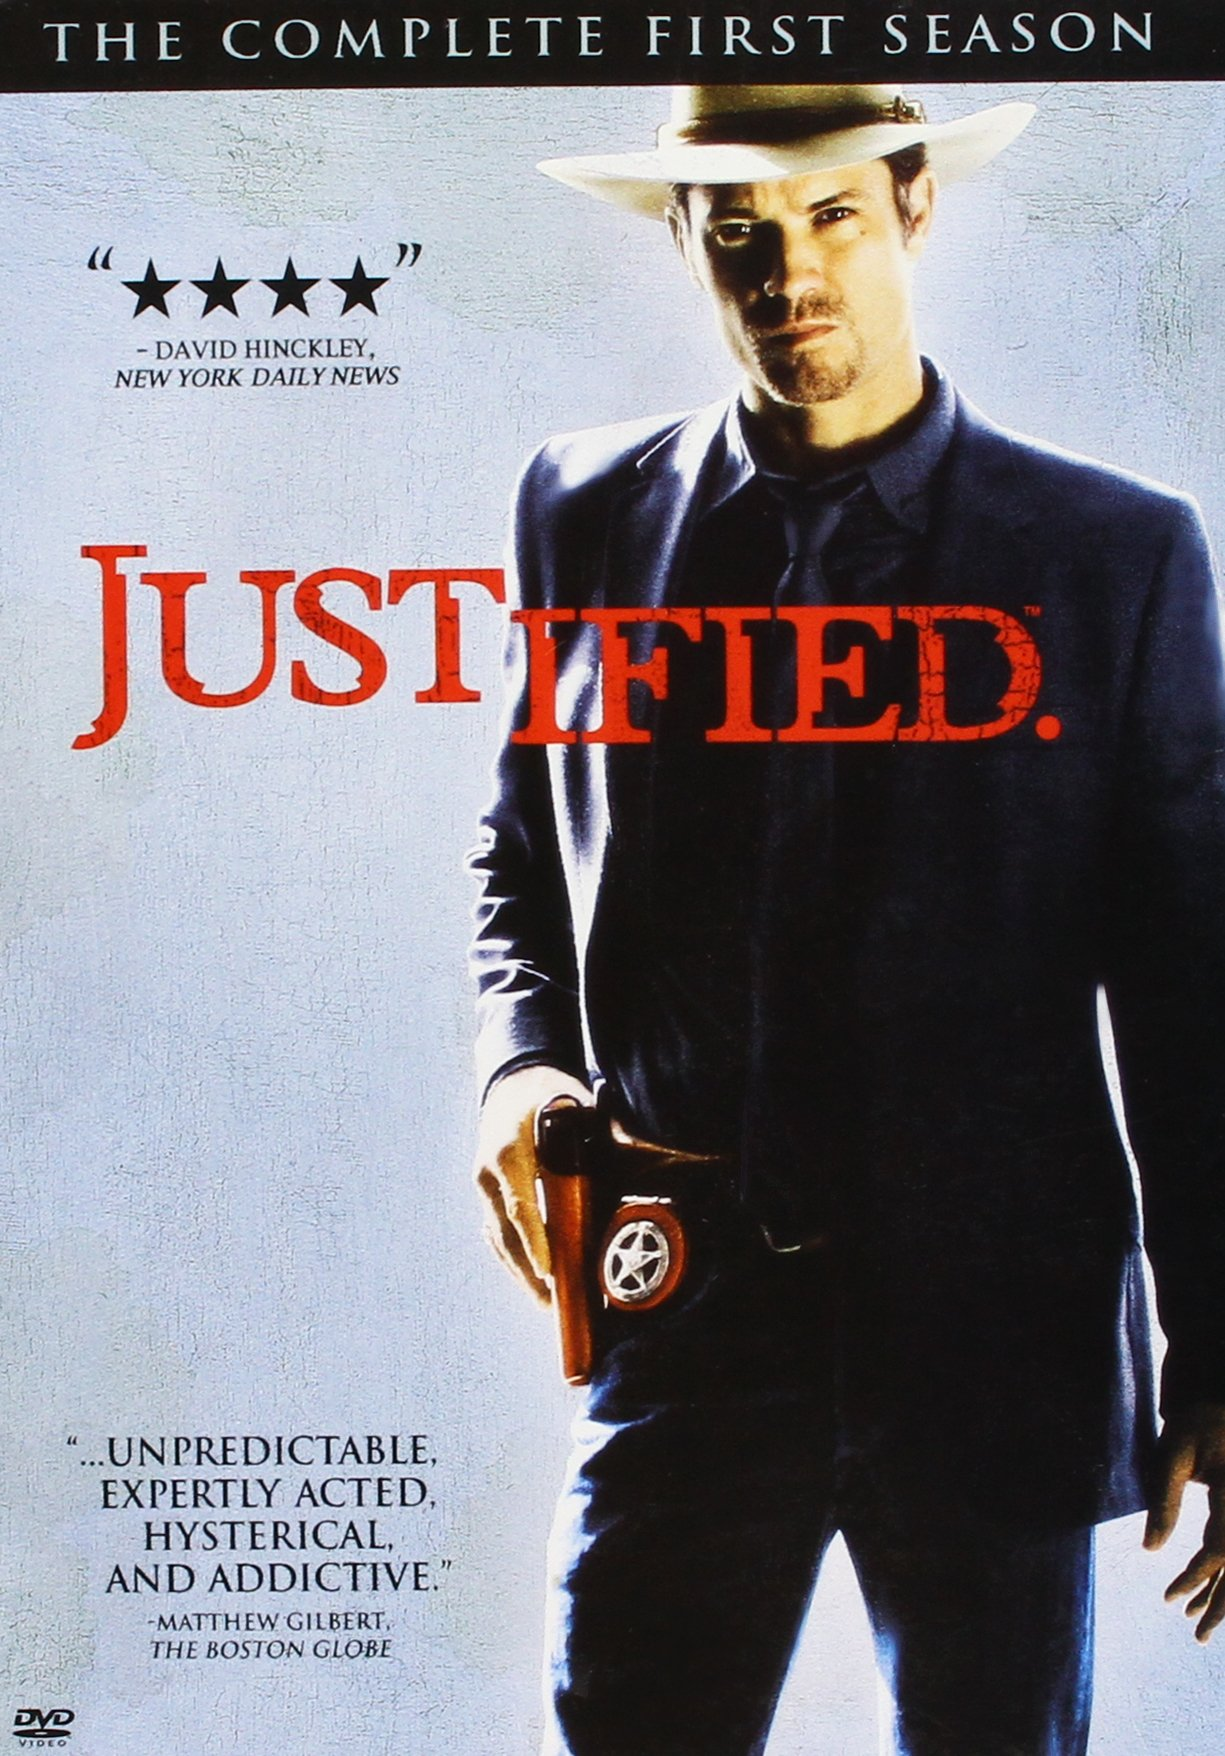 Justified : Complete Seasons 1- 5 Bundle Collection (15-Disc, DVD, 2014) by